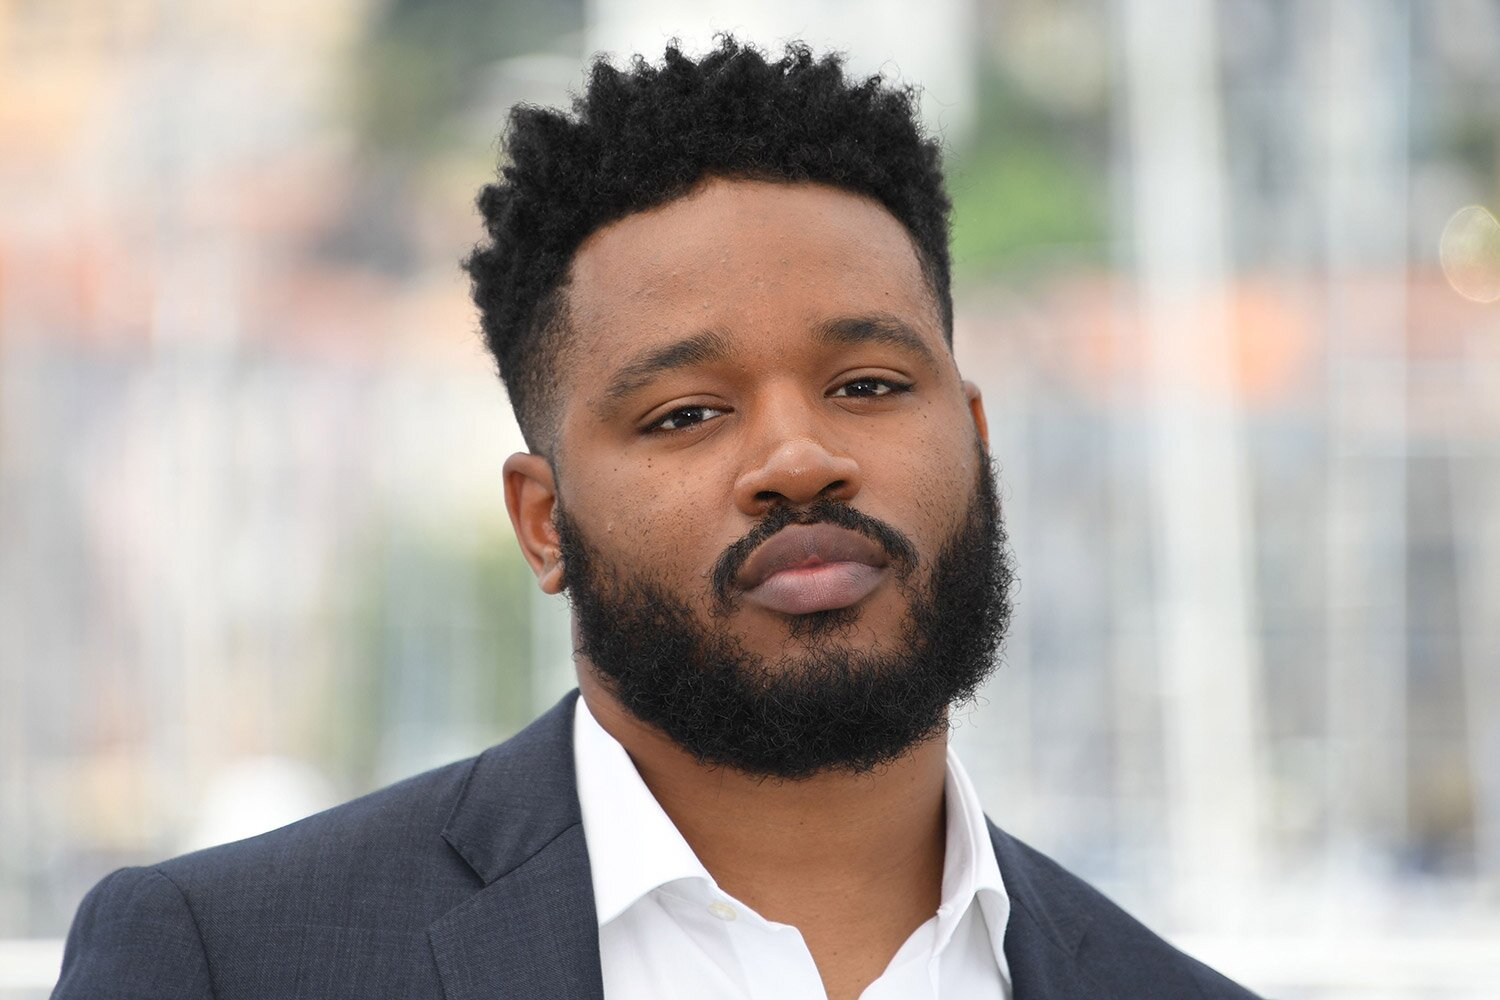 US director Ryan Coogler poses on May 10, 2018 during a photocall at the 71st edition of the Cannes Film Festival in Cannes, southern France. (Photo by LOIC VENANCE / AFP)        (Photo credit should read LOIC VENANCE/AFP via Getty Images)